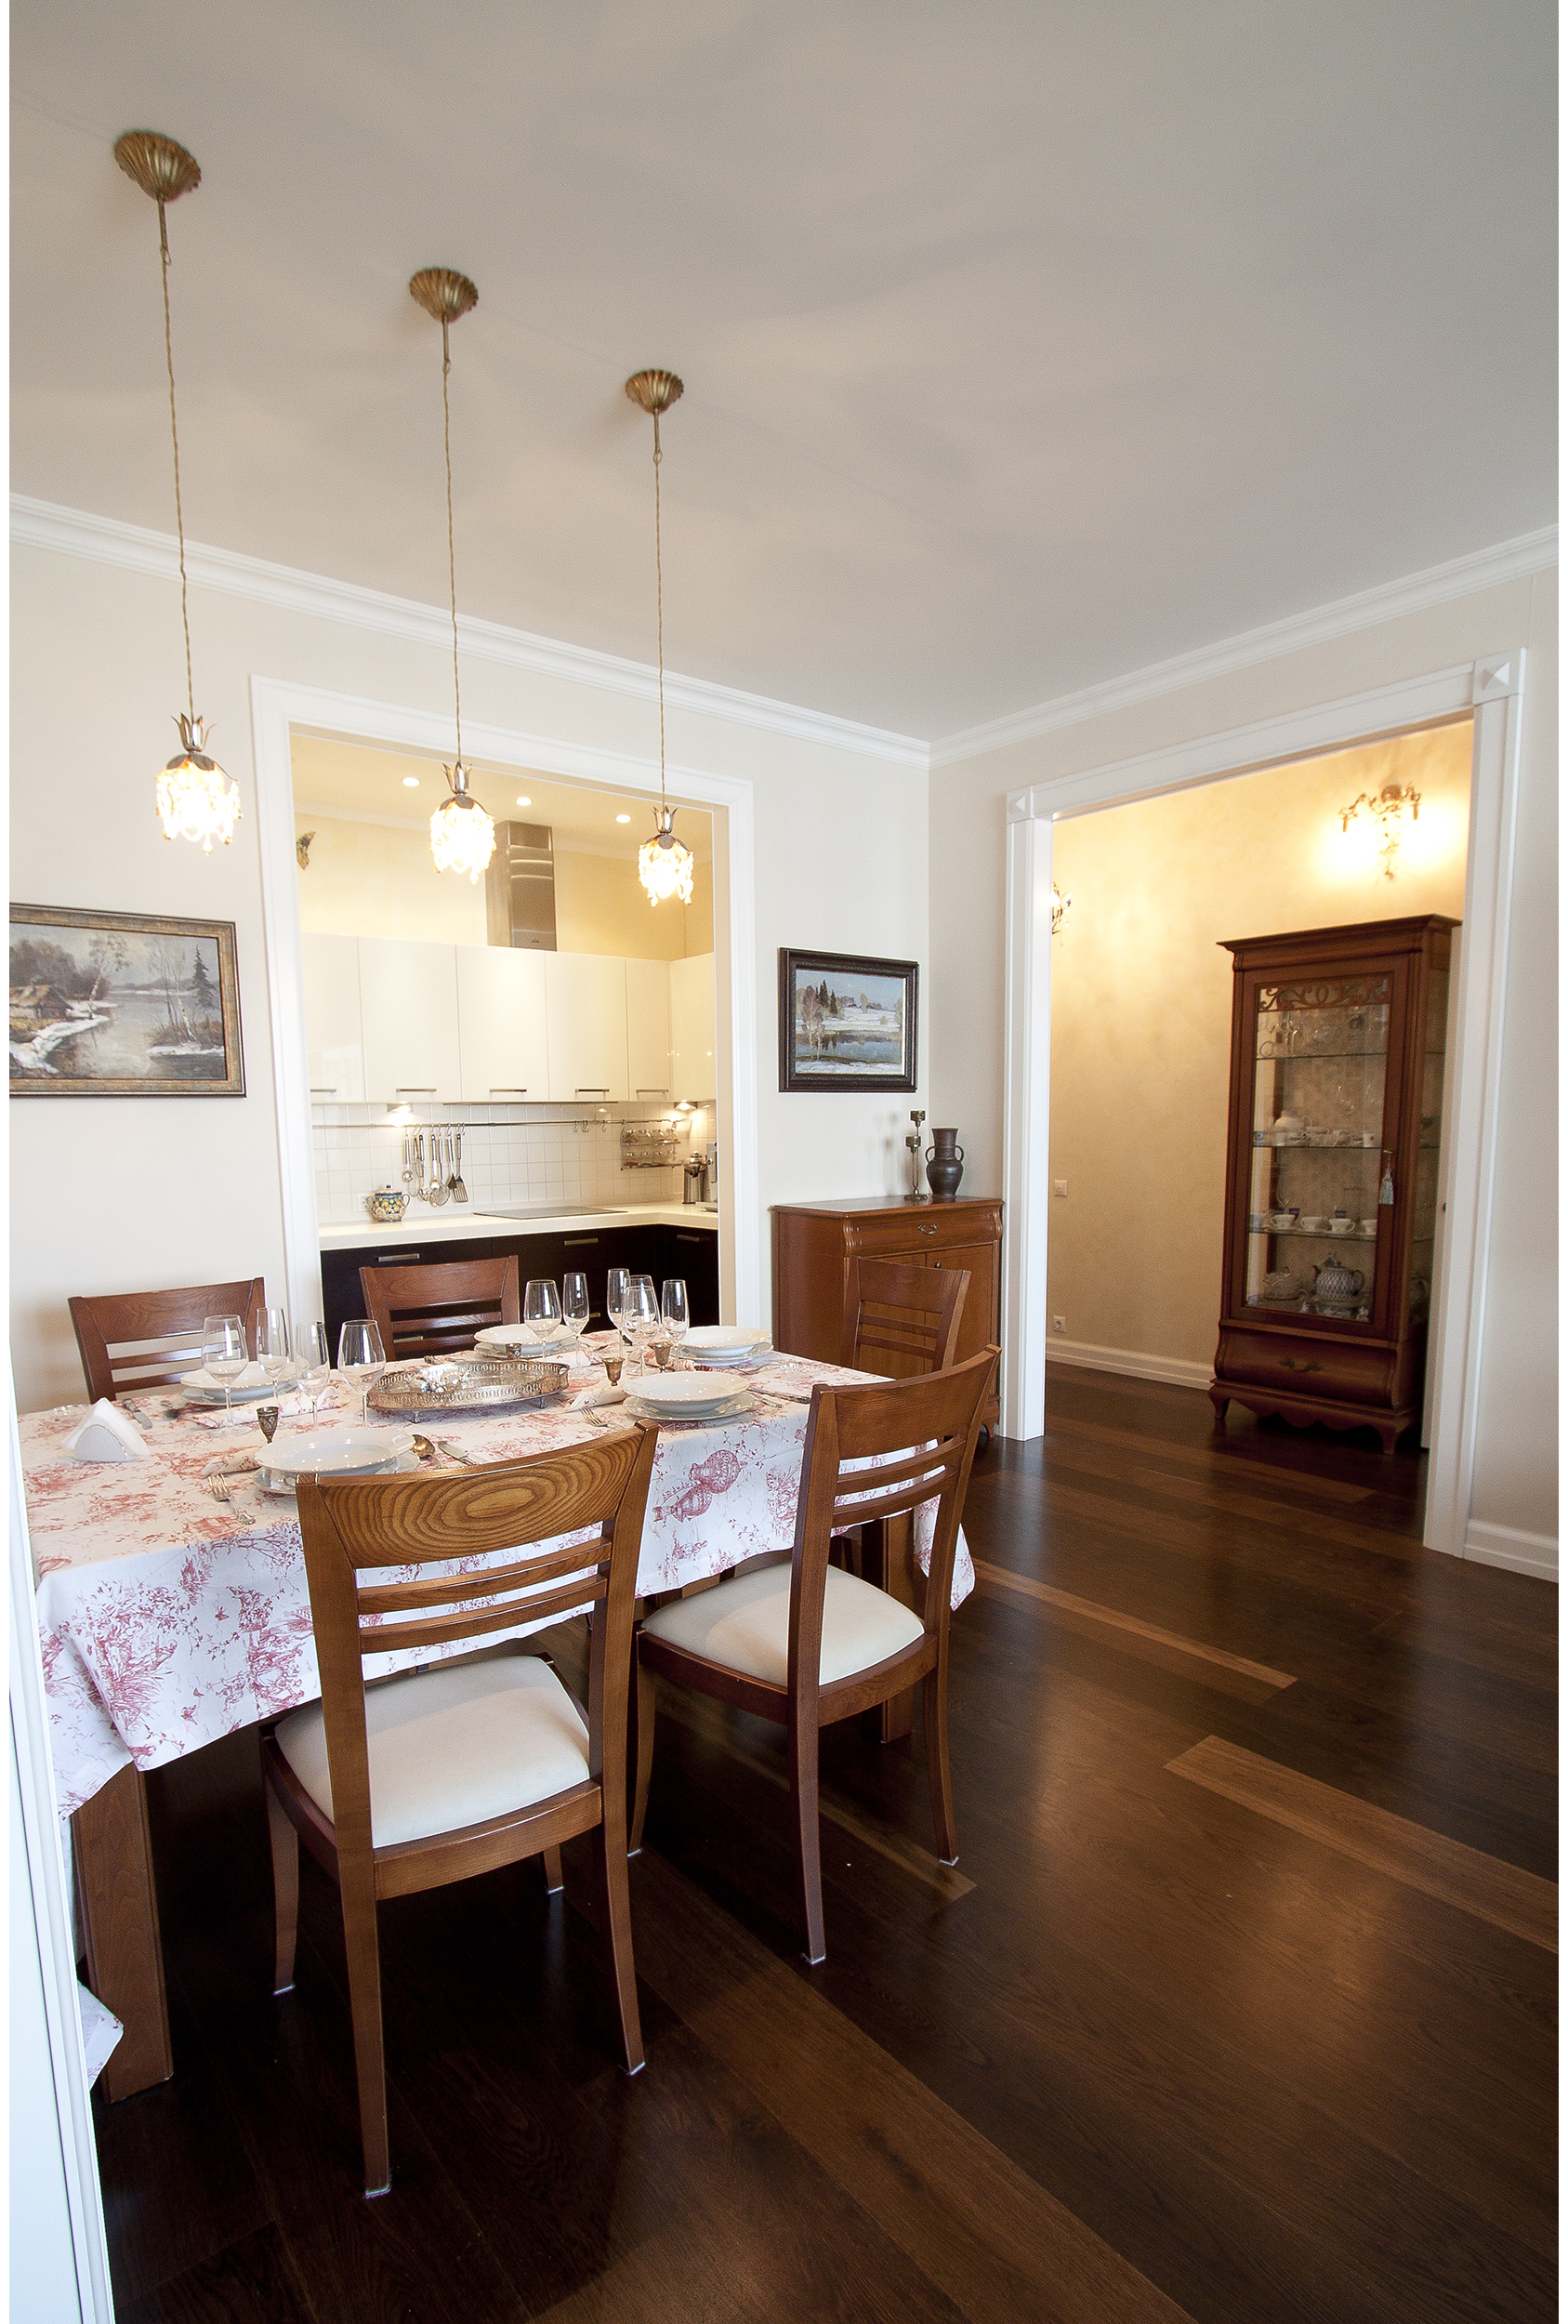 Copy of Traditional kitchen/dining interior